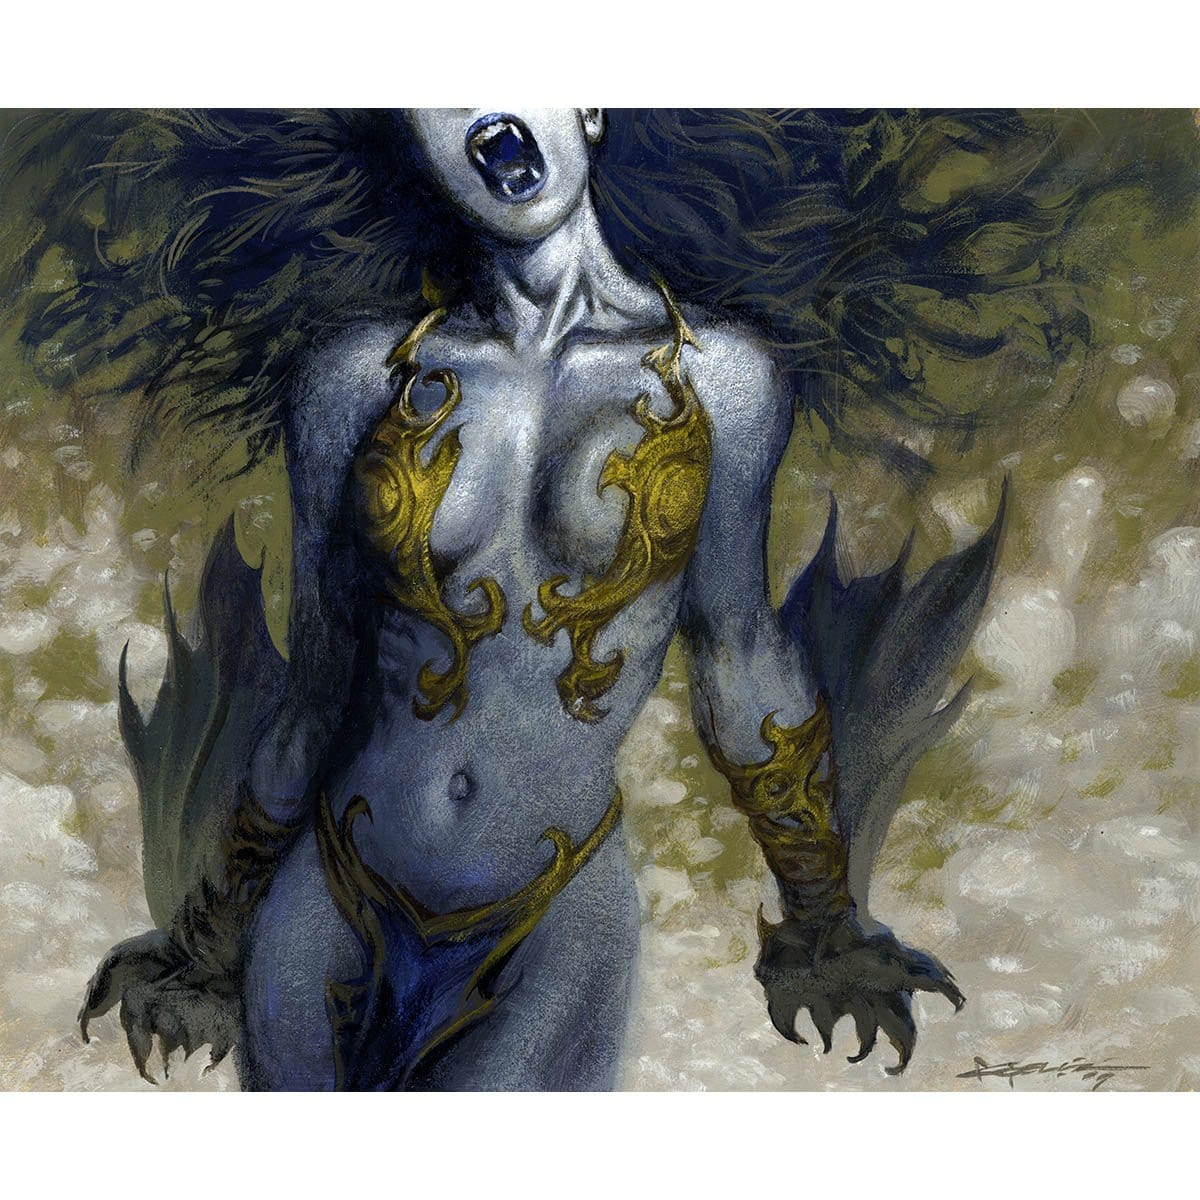 Vampire's Bite Print - Print - Original Magic Art - Accessories for Magic the Gathering and other card games